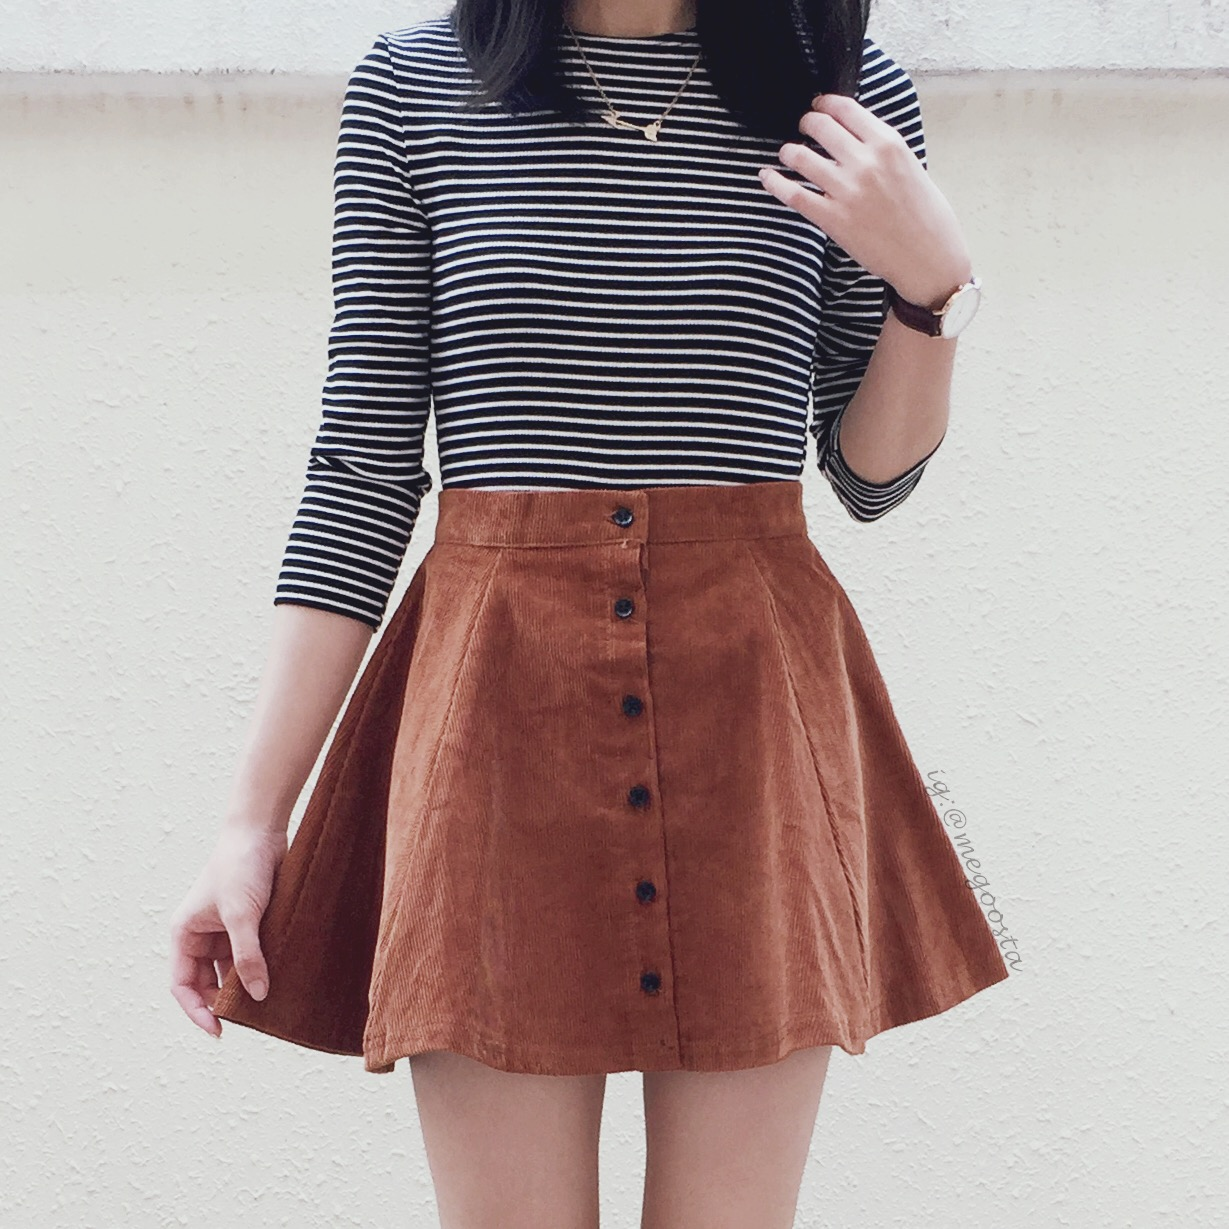 Corduroy Button Up Skirt (Camel) · Megoosta Fashion · Free ...